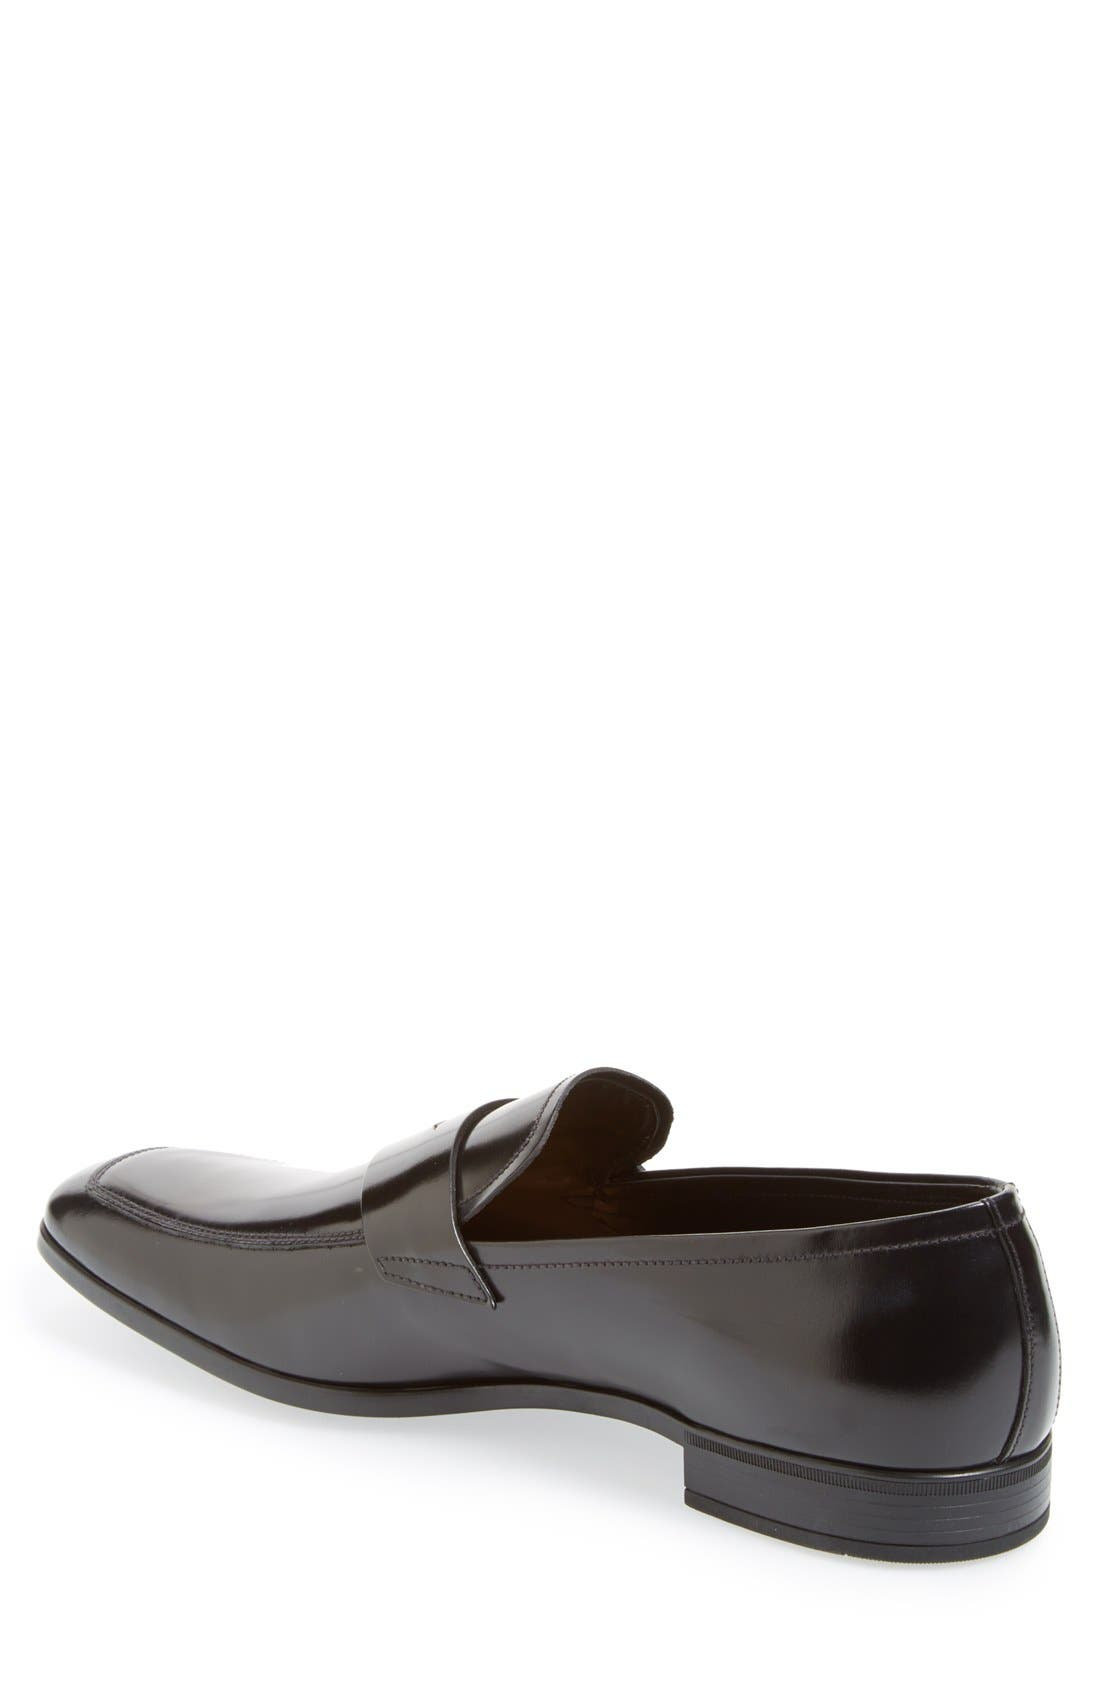 Spazzolato Penny Loafer,                             Alternate thumbnail 2, color,                             001